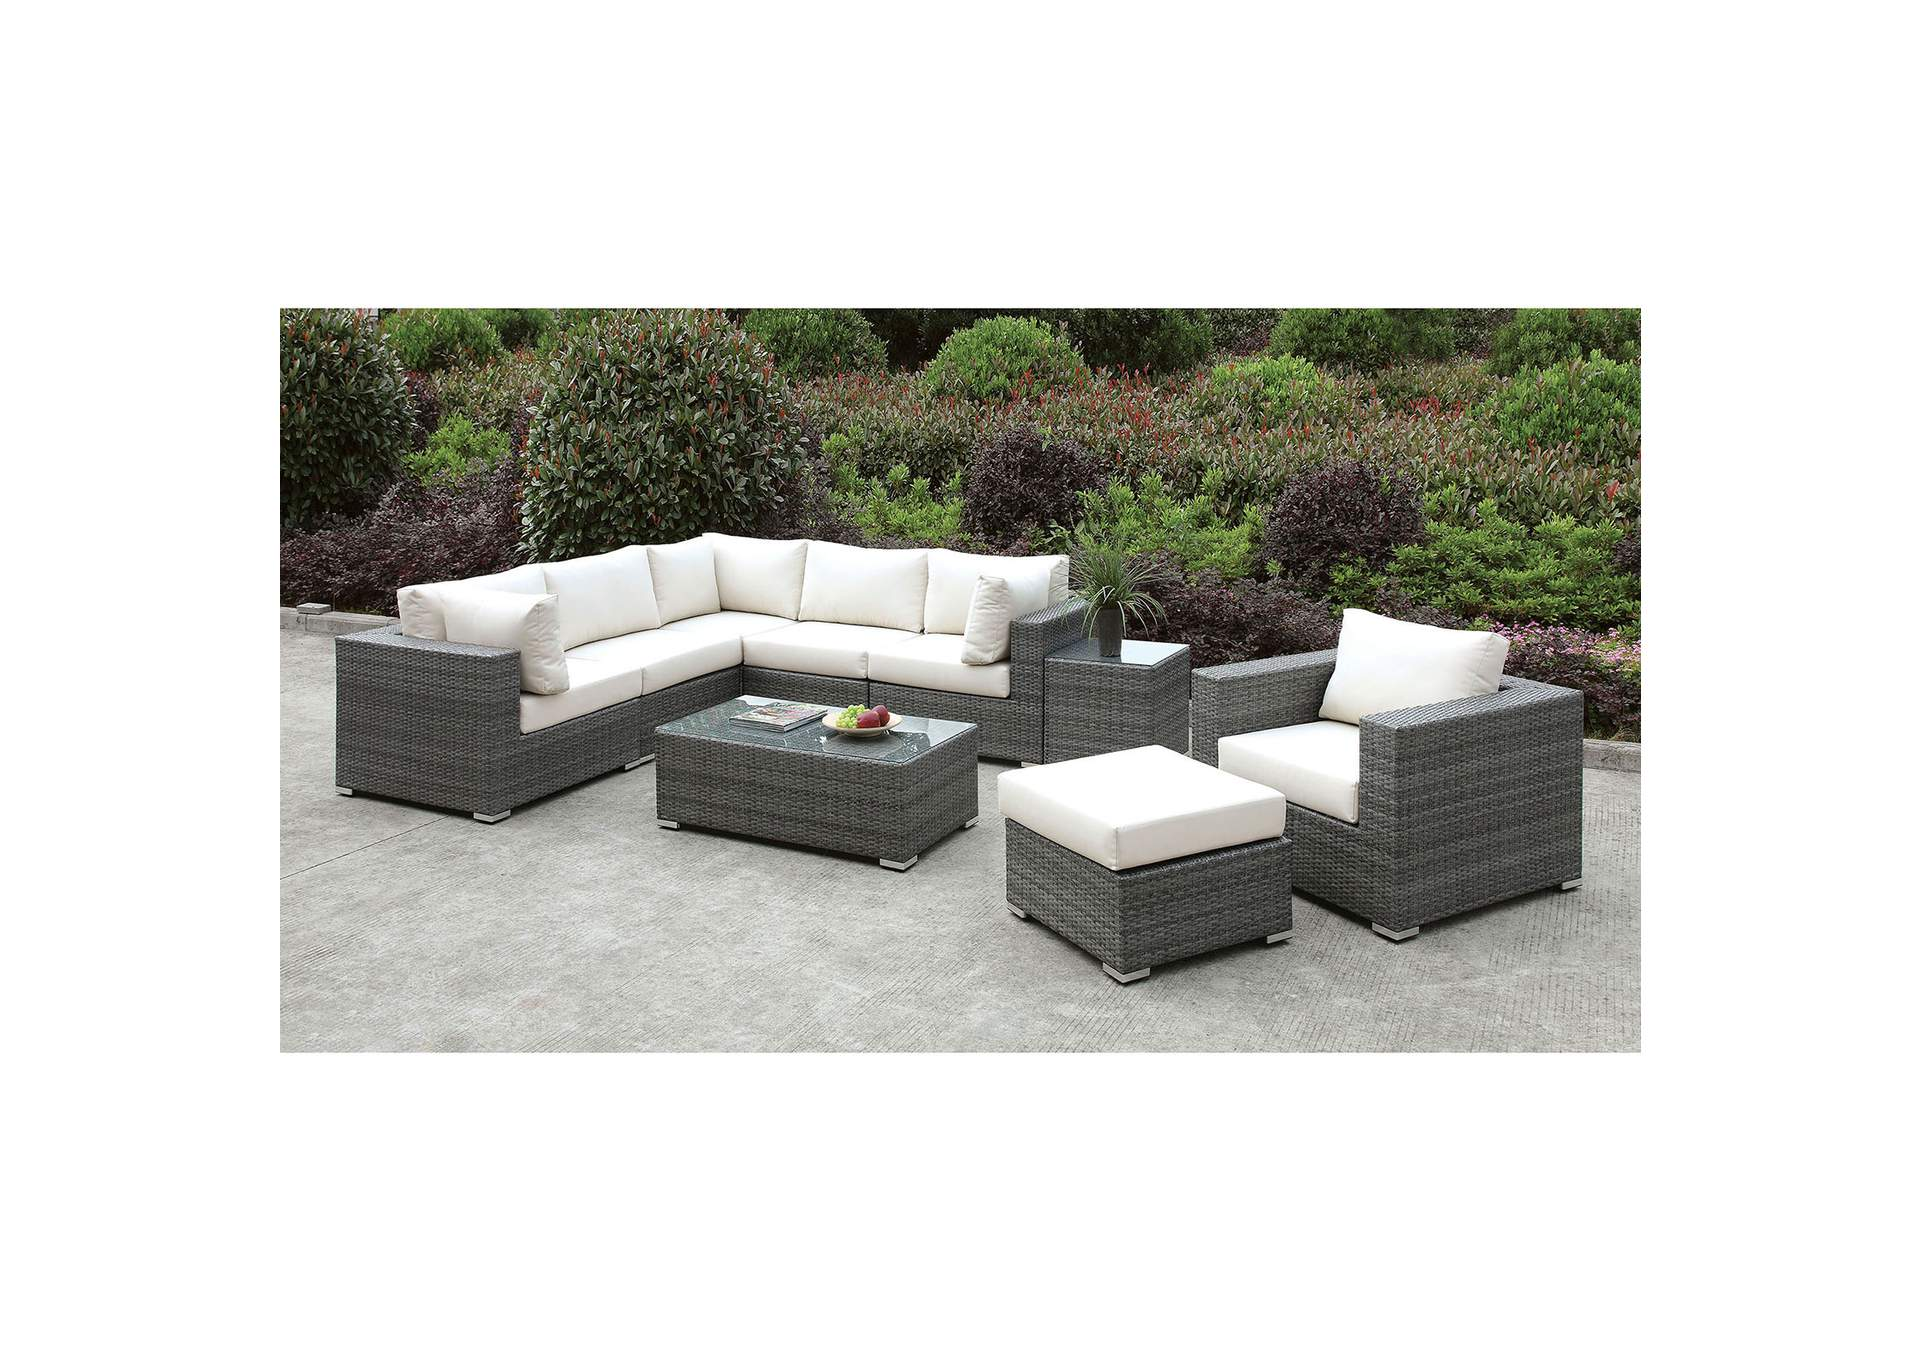 Somani Light Gray/Ivory Wicker L-Sectional w/Chair, Ottoman & Coffee Table,Furniture of America